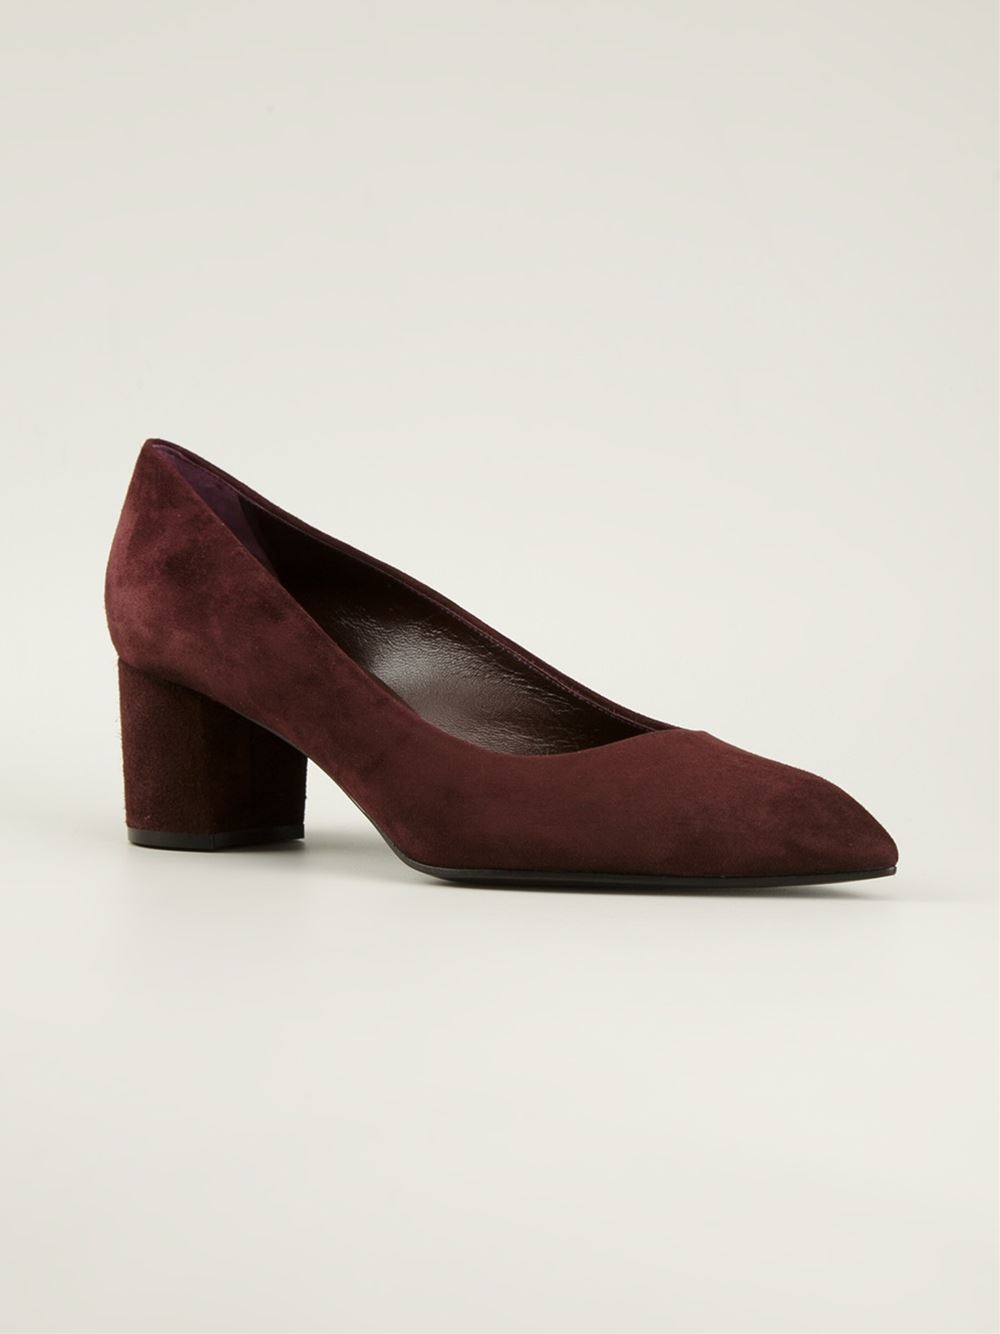 Lyst - Casadei Low Chunky Heel Pumps in Red